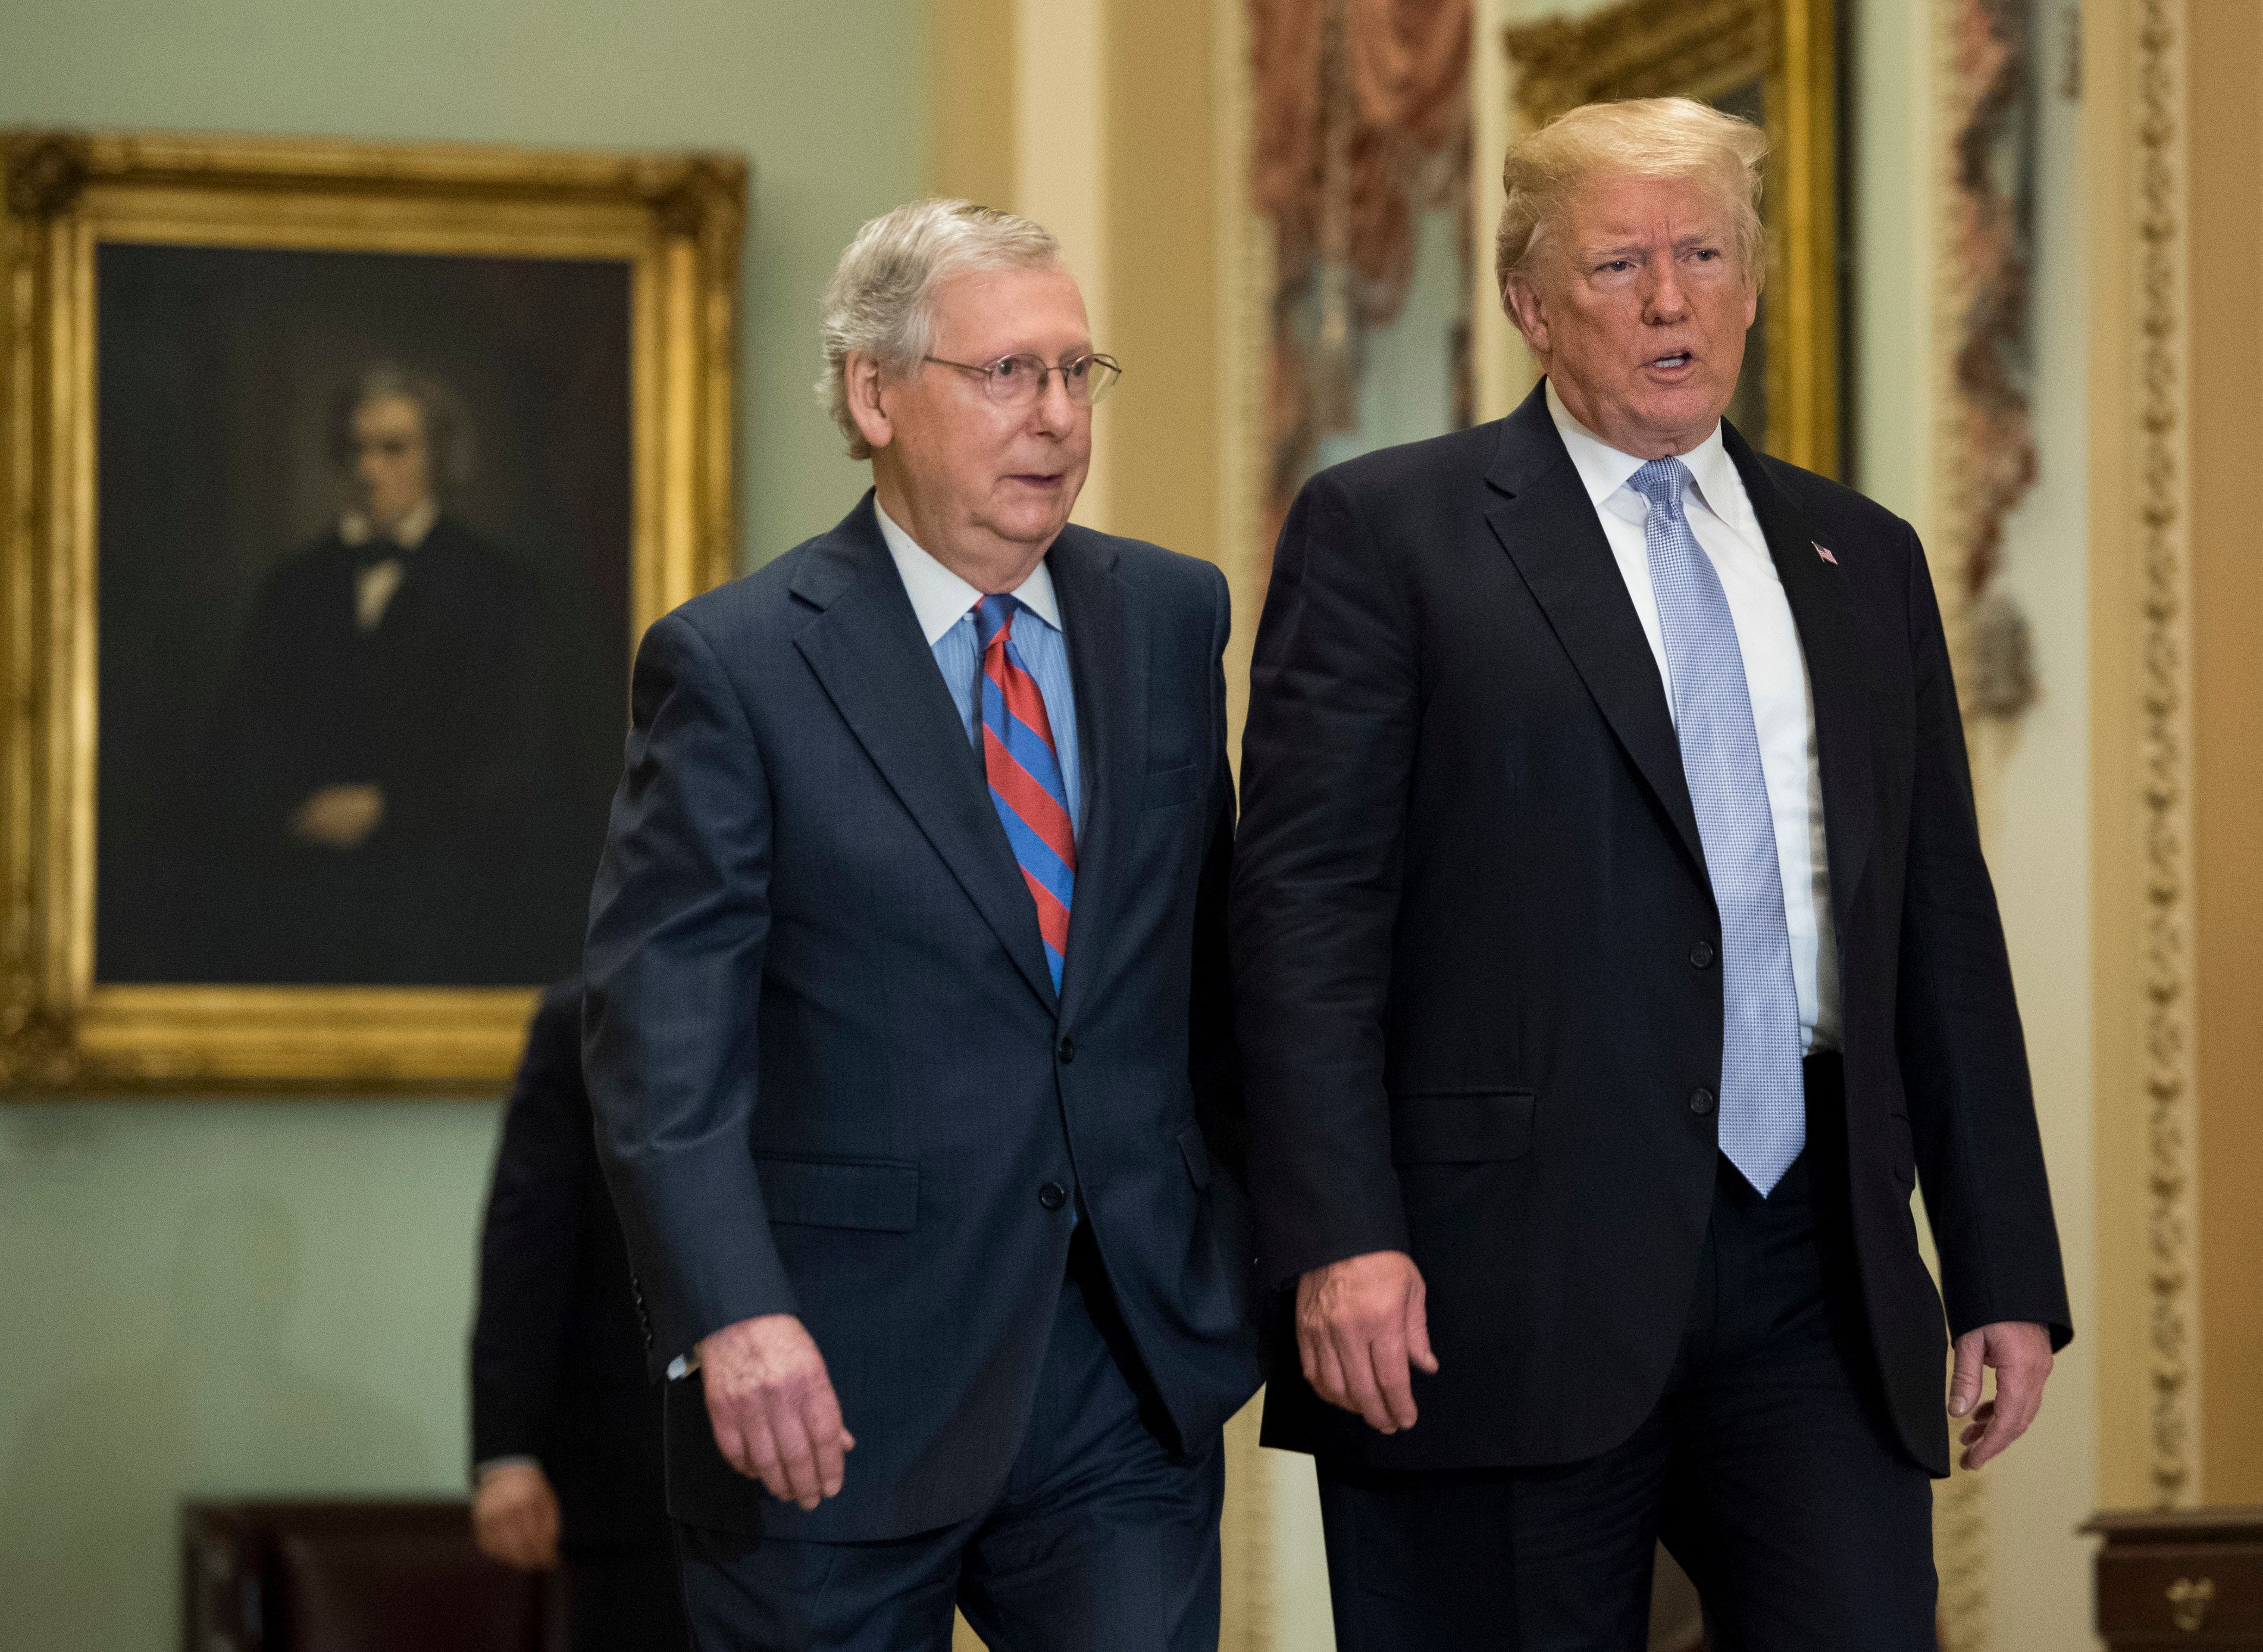 WASHINGTON, DC - MAY 15: US President Donald Trump (R) walks with Senate Majority Leader Mitch McConnell (R-KY) as he attends the Republican luncheon at the U.S. Capitol Building on May 15, 2018 in Washington, D.C. (Photo by Kevin Dietsch-Pool/Getty Images)